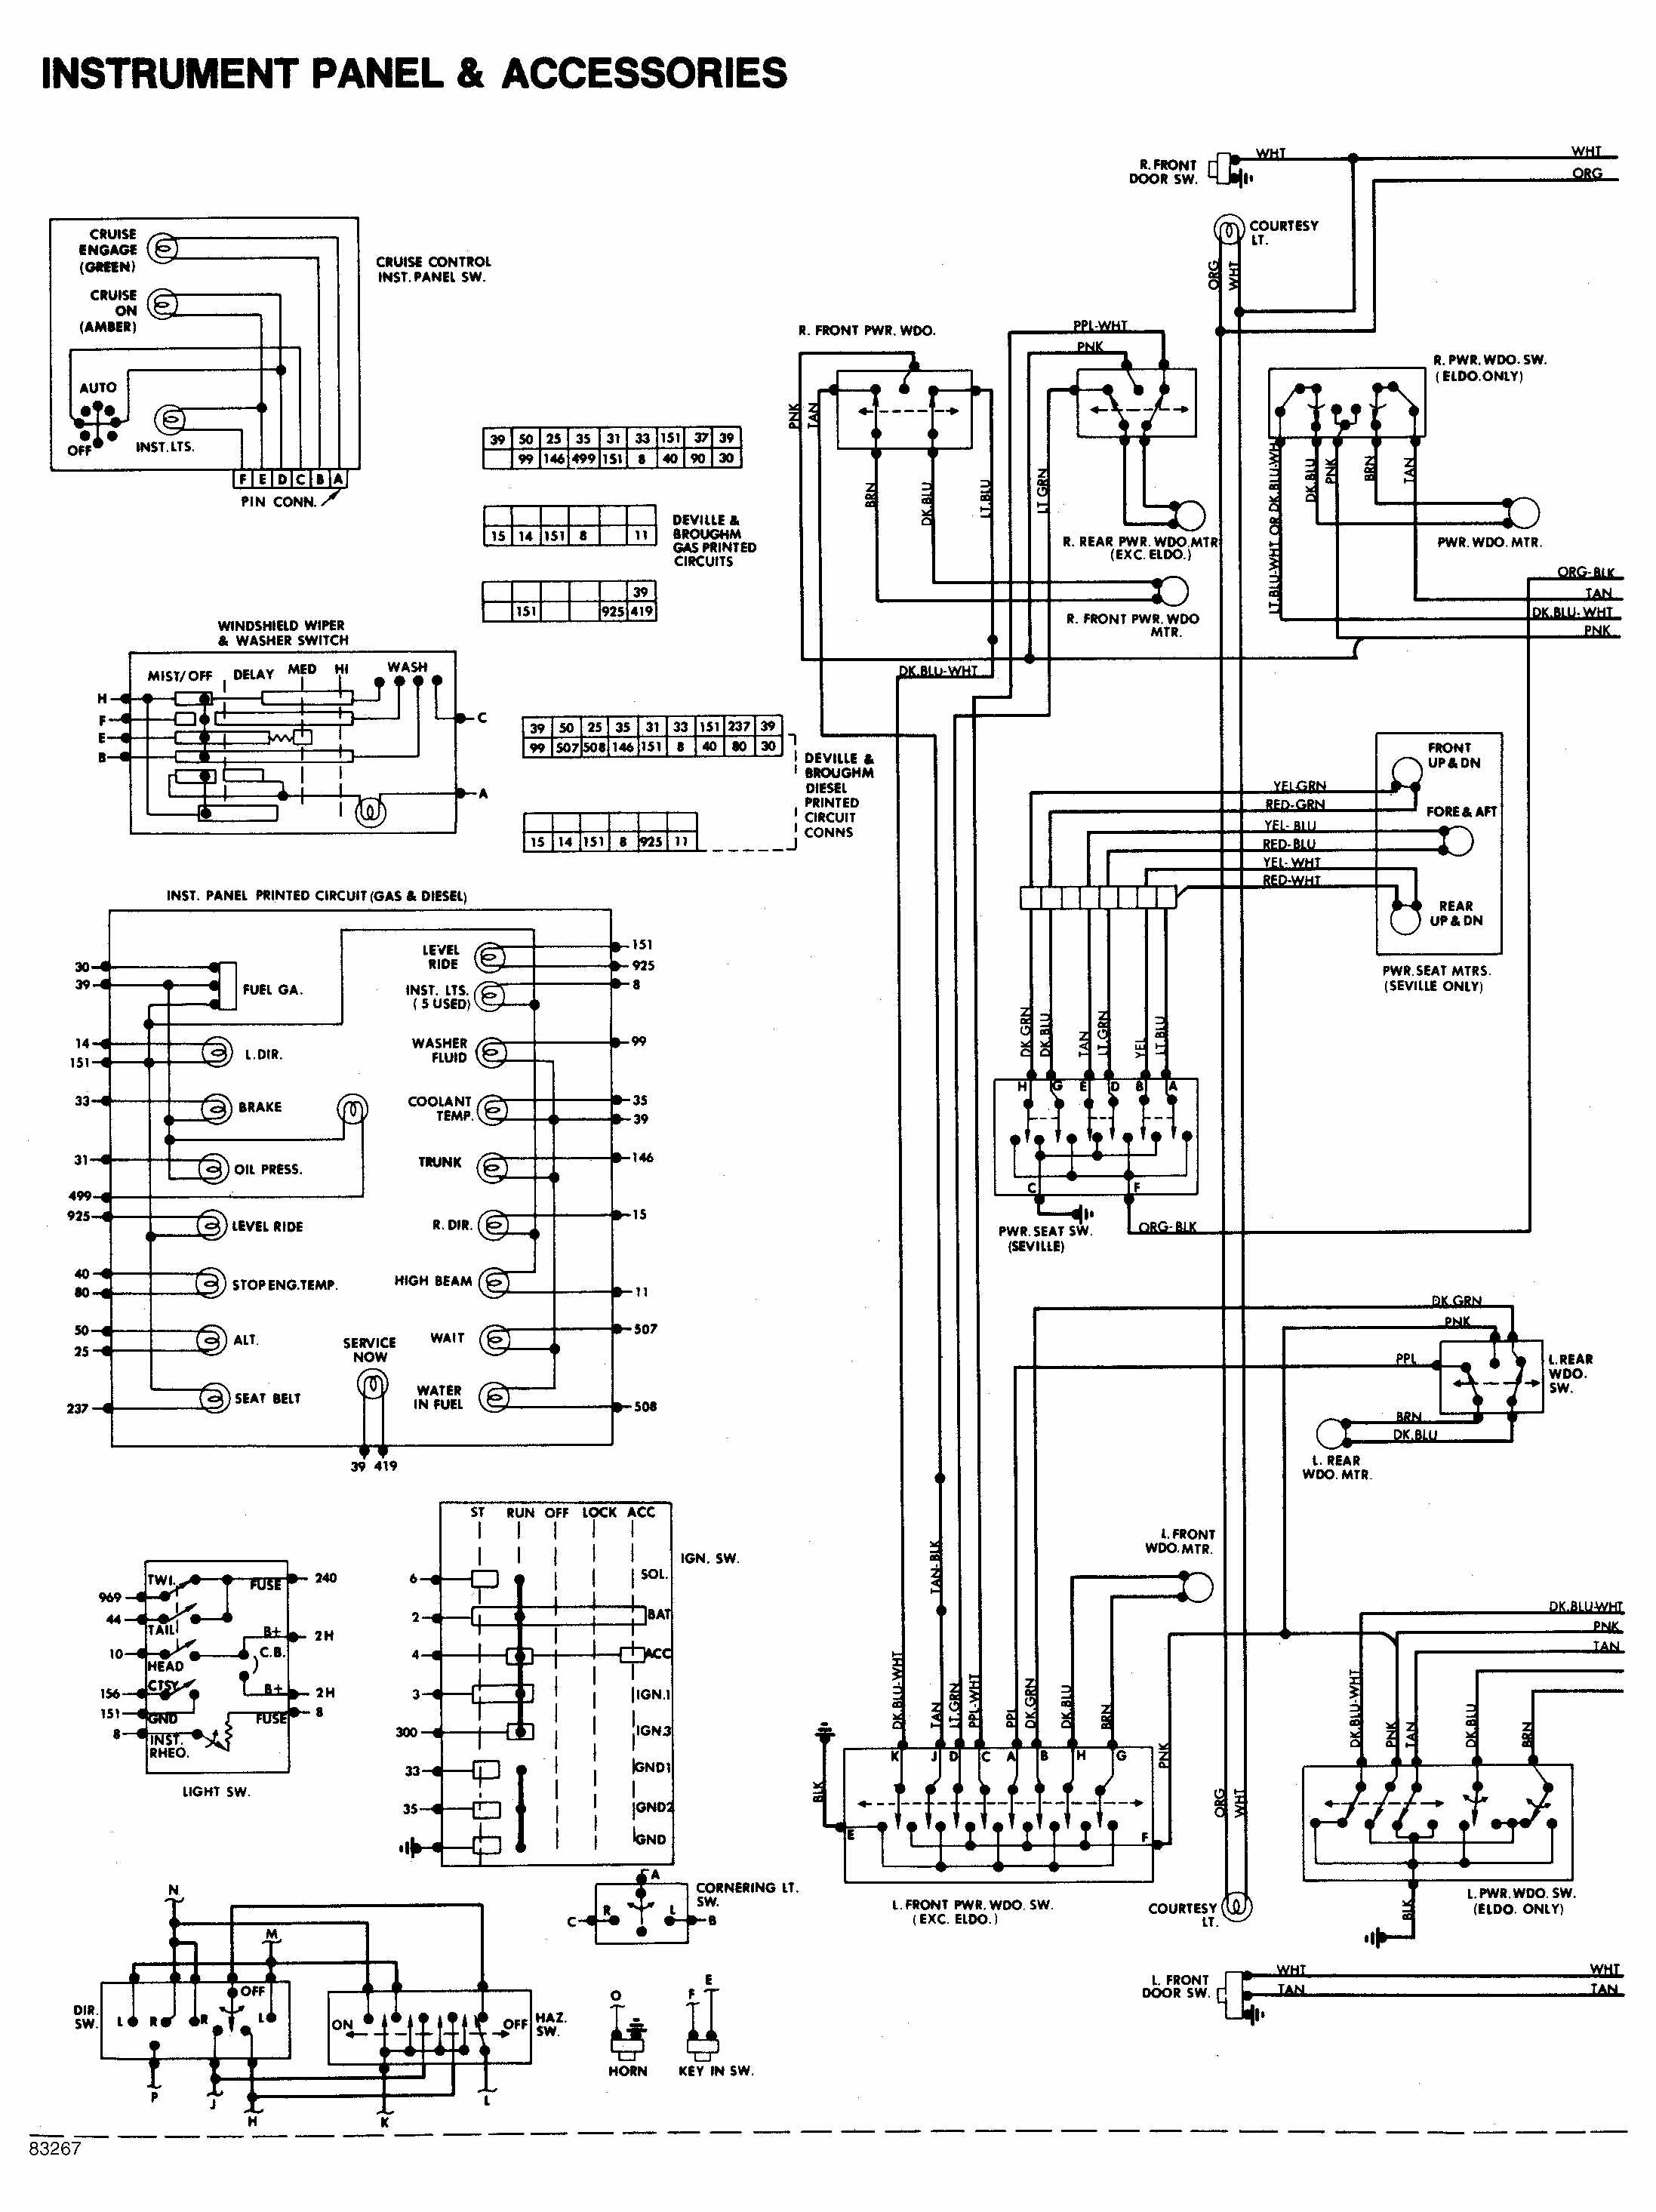 1963 Avanti Wiring Diagram - Wiring Diagram G8 on 1978 280z wiring diagram, 1971 240z wiring diagram, 1975 280z wiring diagram, 1977 280z wiring diagram, 1976 280z wiring diagram,